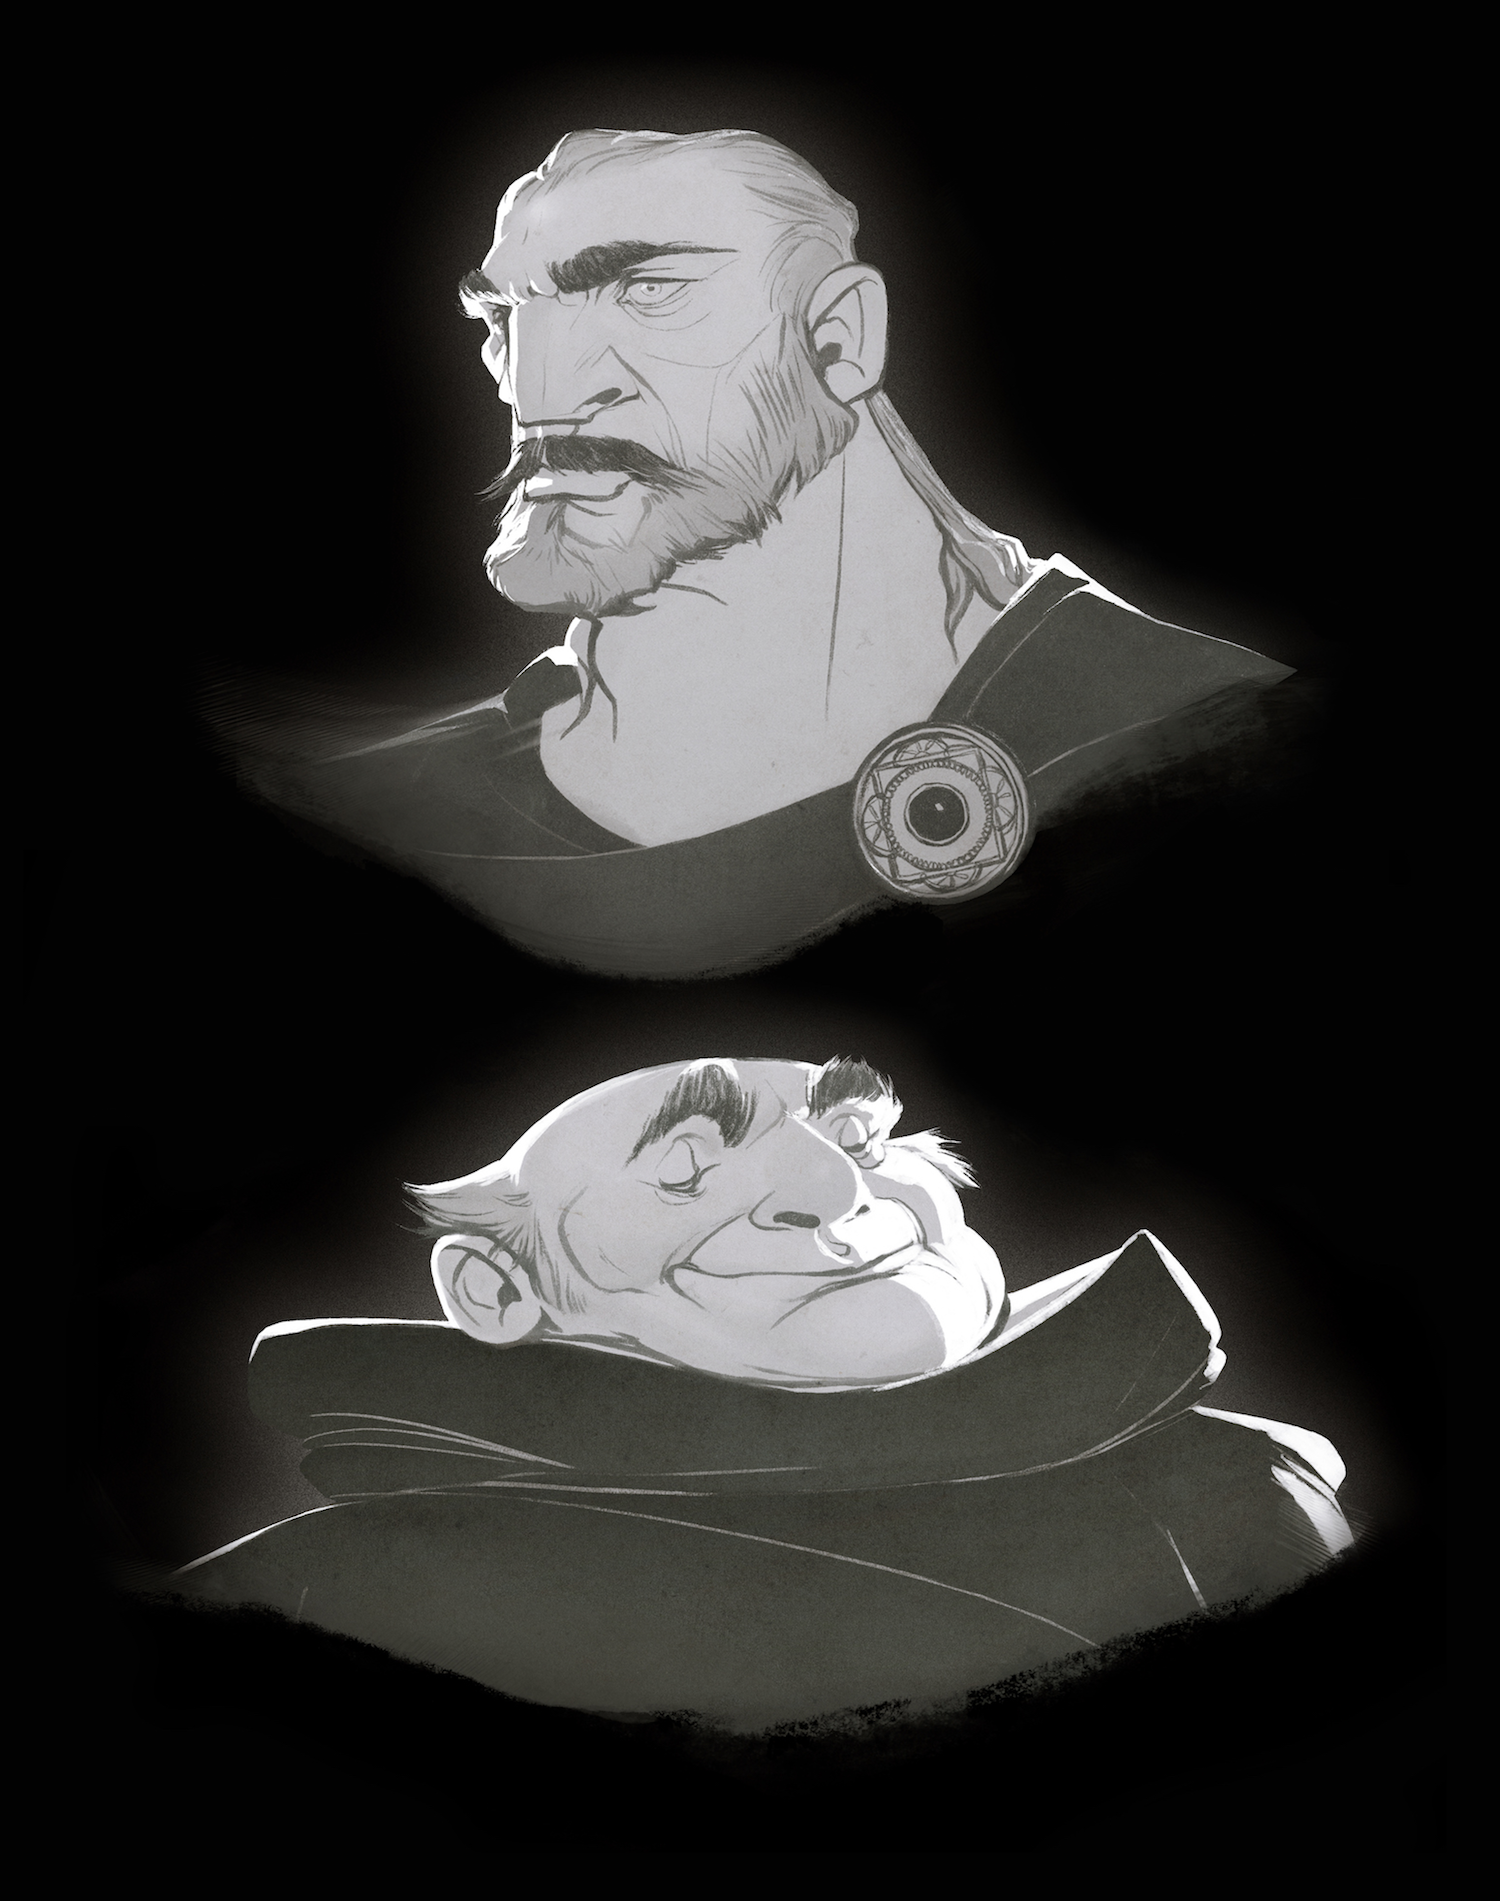 character_ghost1.png